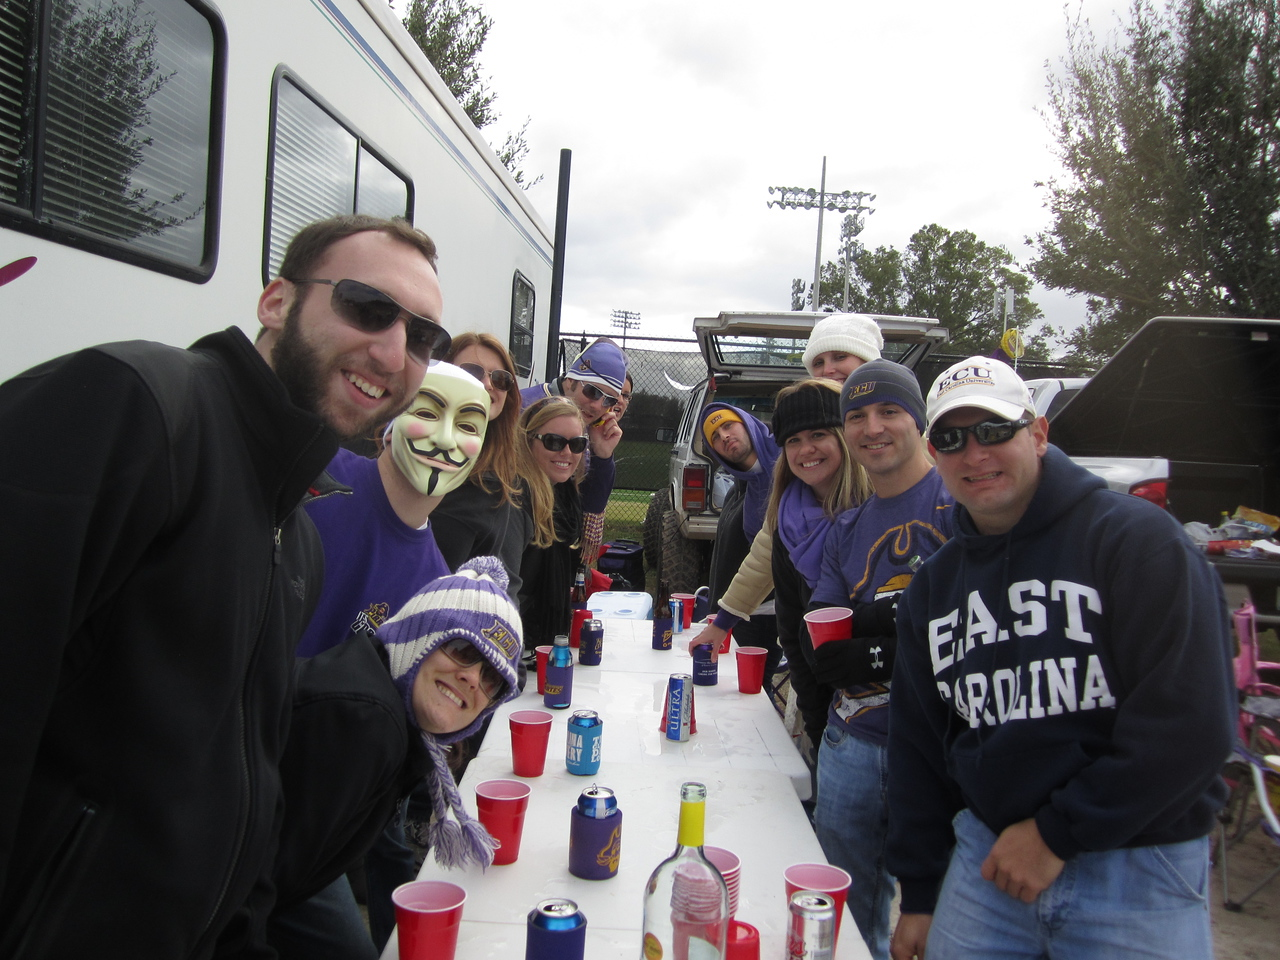 11/5/2011 ECU vs Southern Miss - , Missy, , Jessica, Lauren, Preston, Billy, Jen, Staci, Chris, Jon